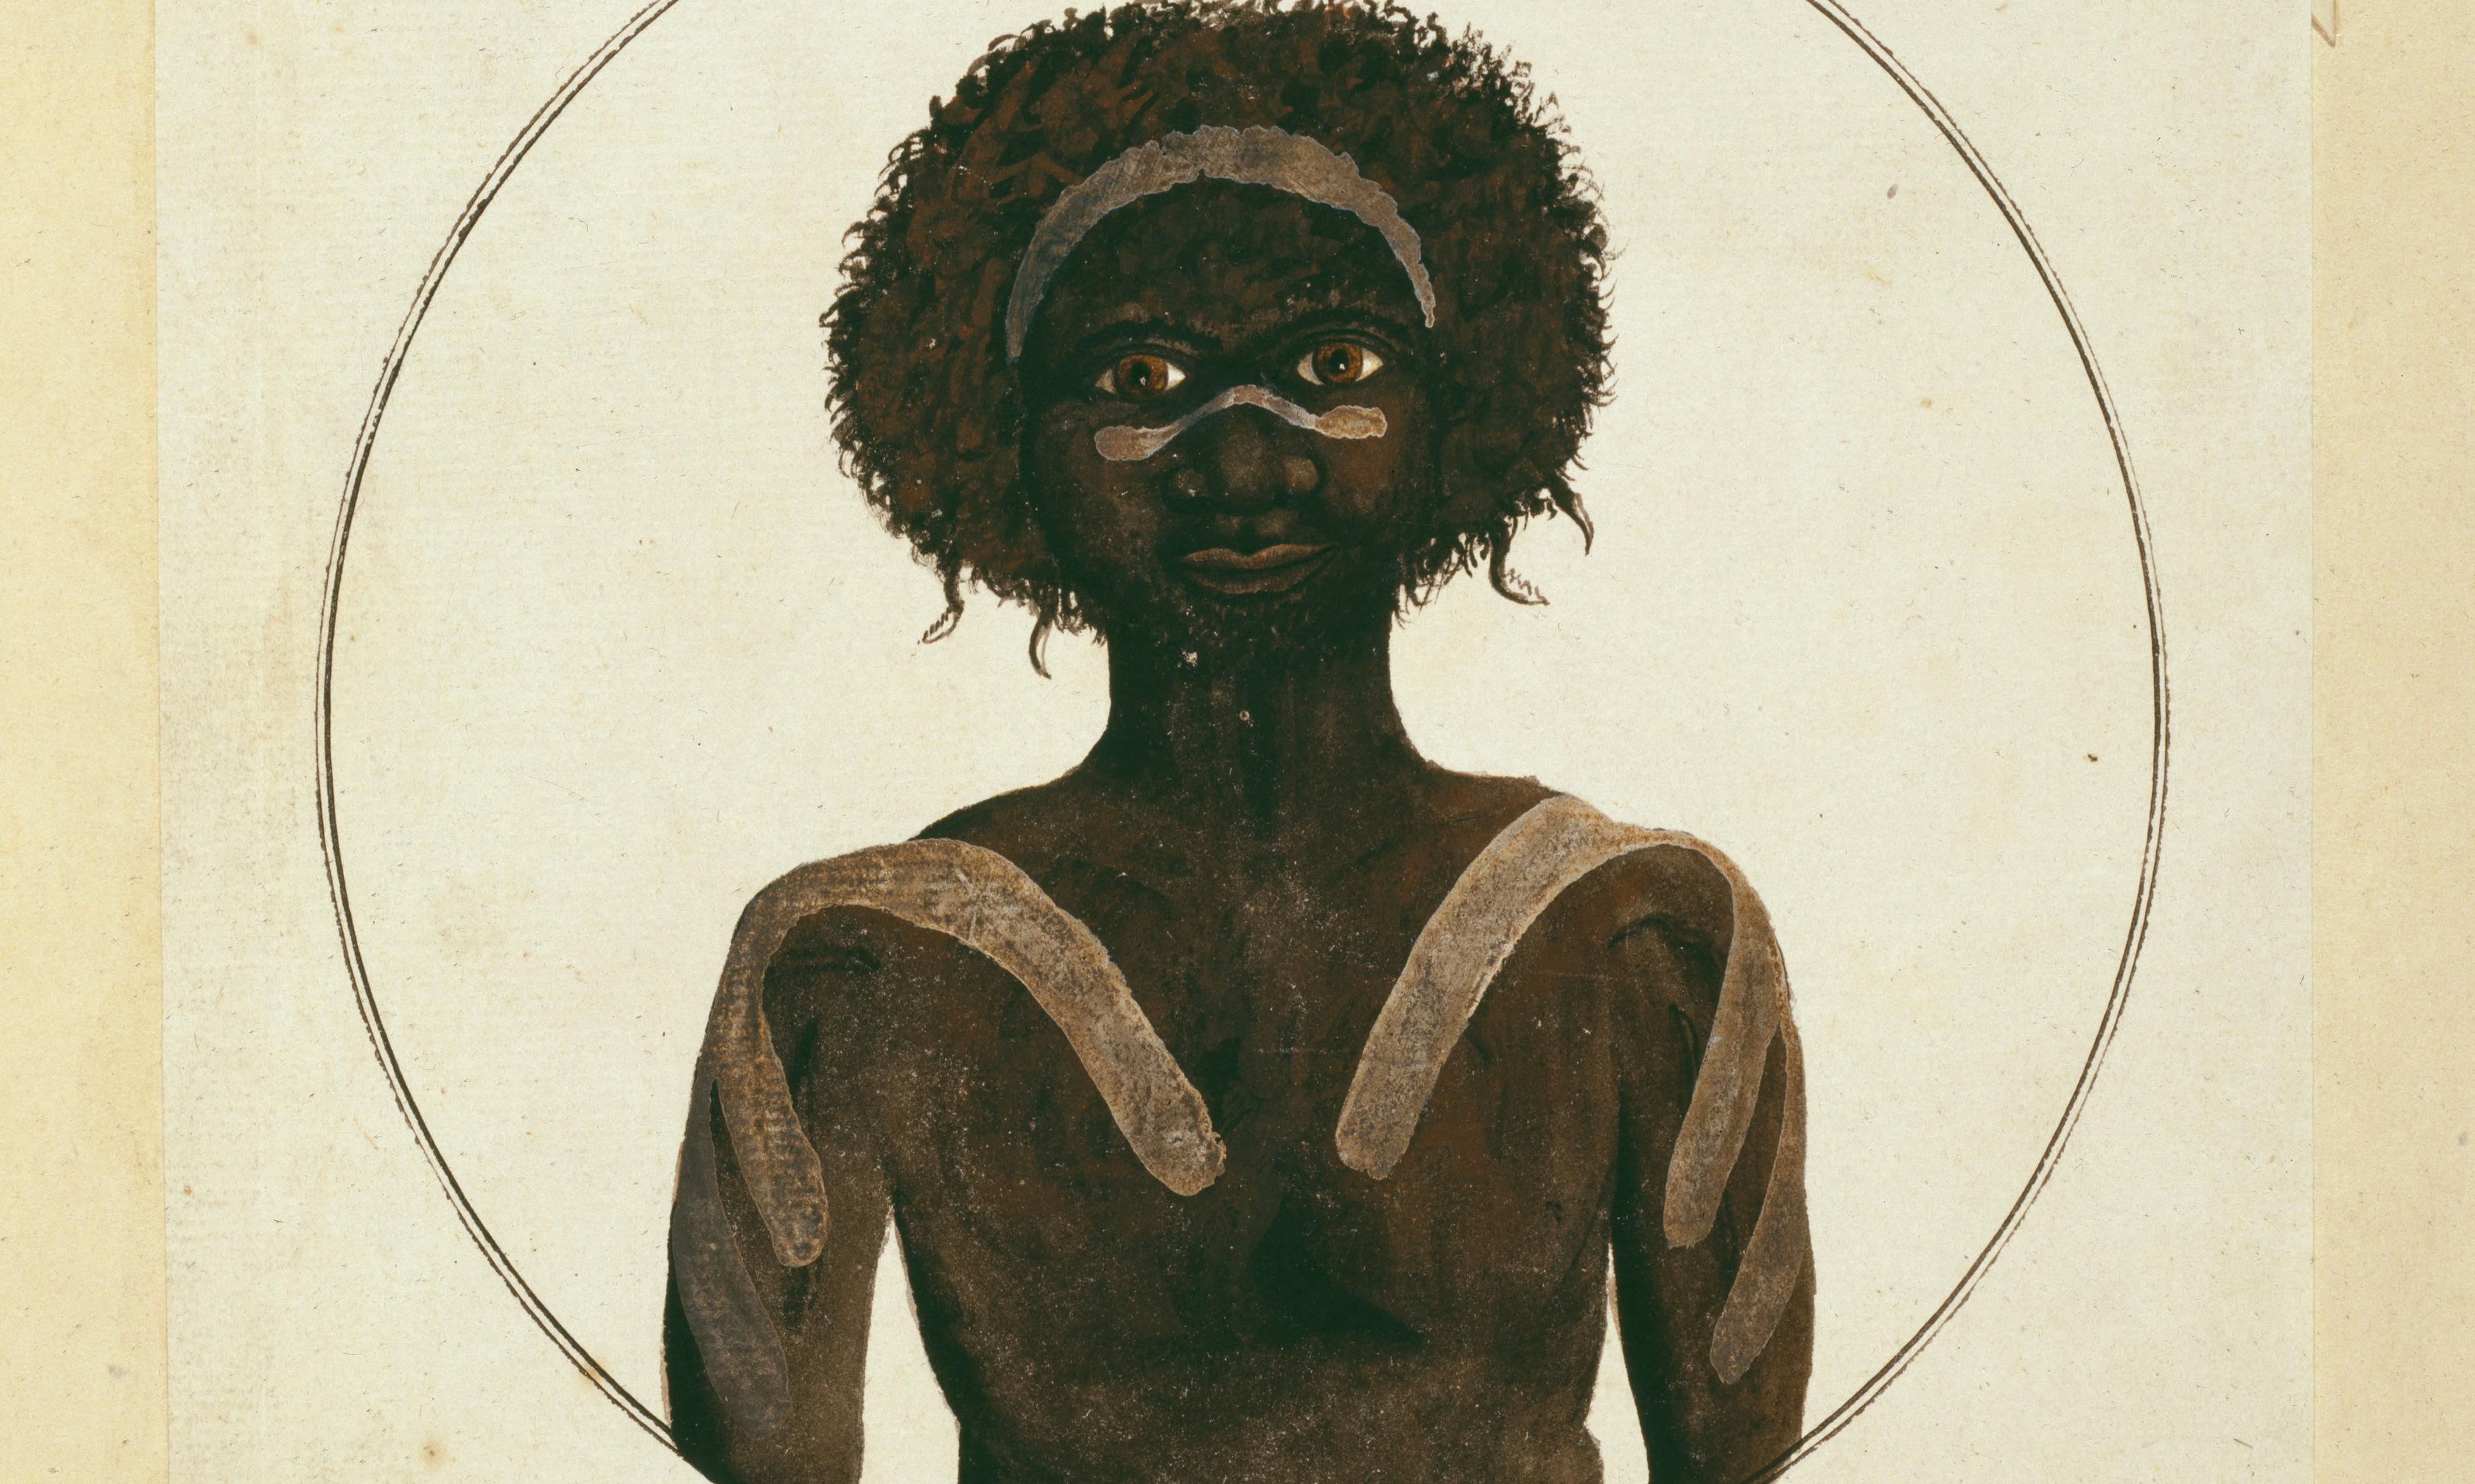 Bennelong's grave: how history betrayed Australia's first diplomat